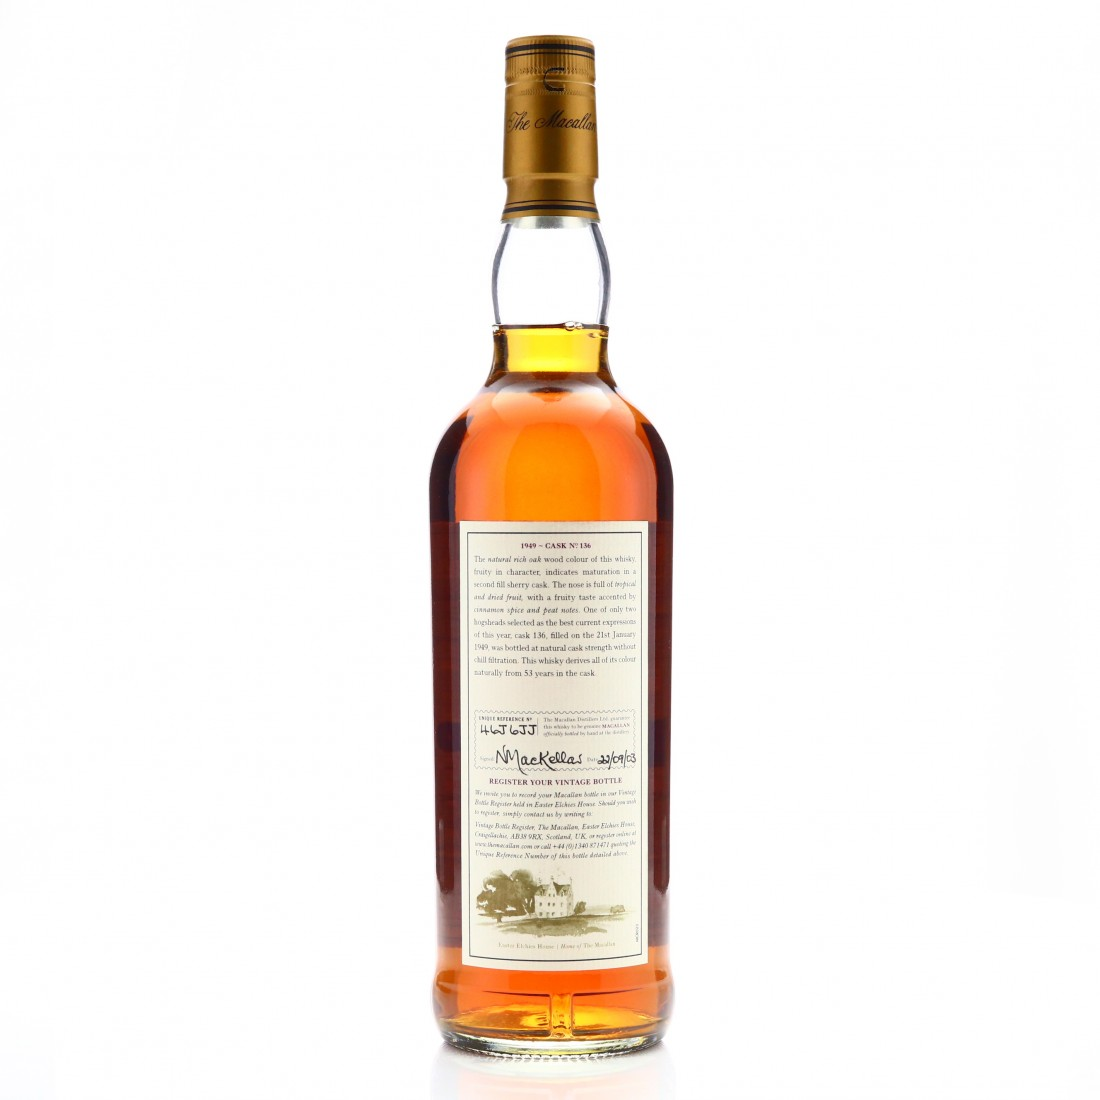 Macallan 1949 Fine and Rare 53 Year Old #136